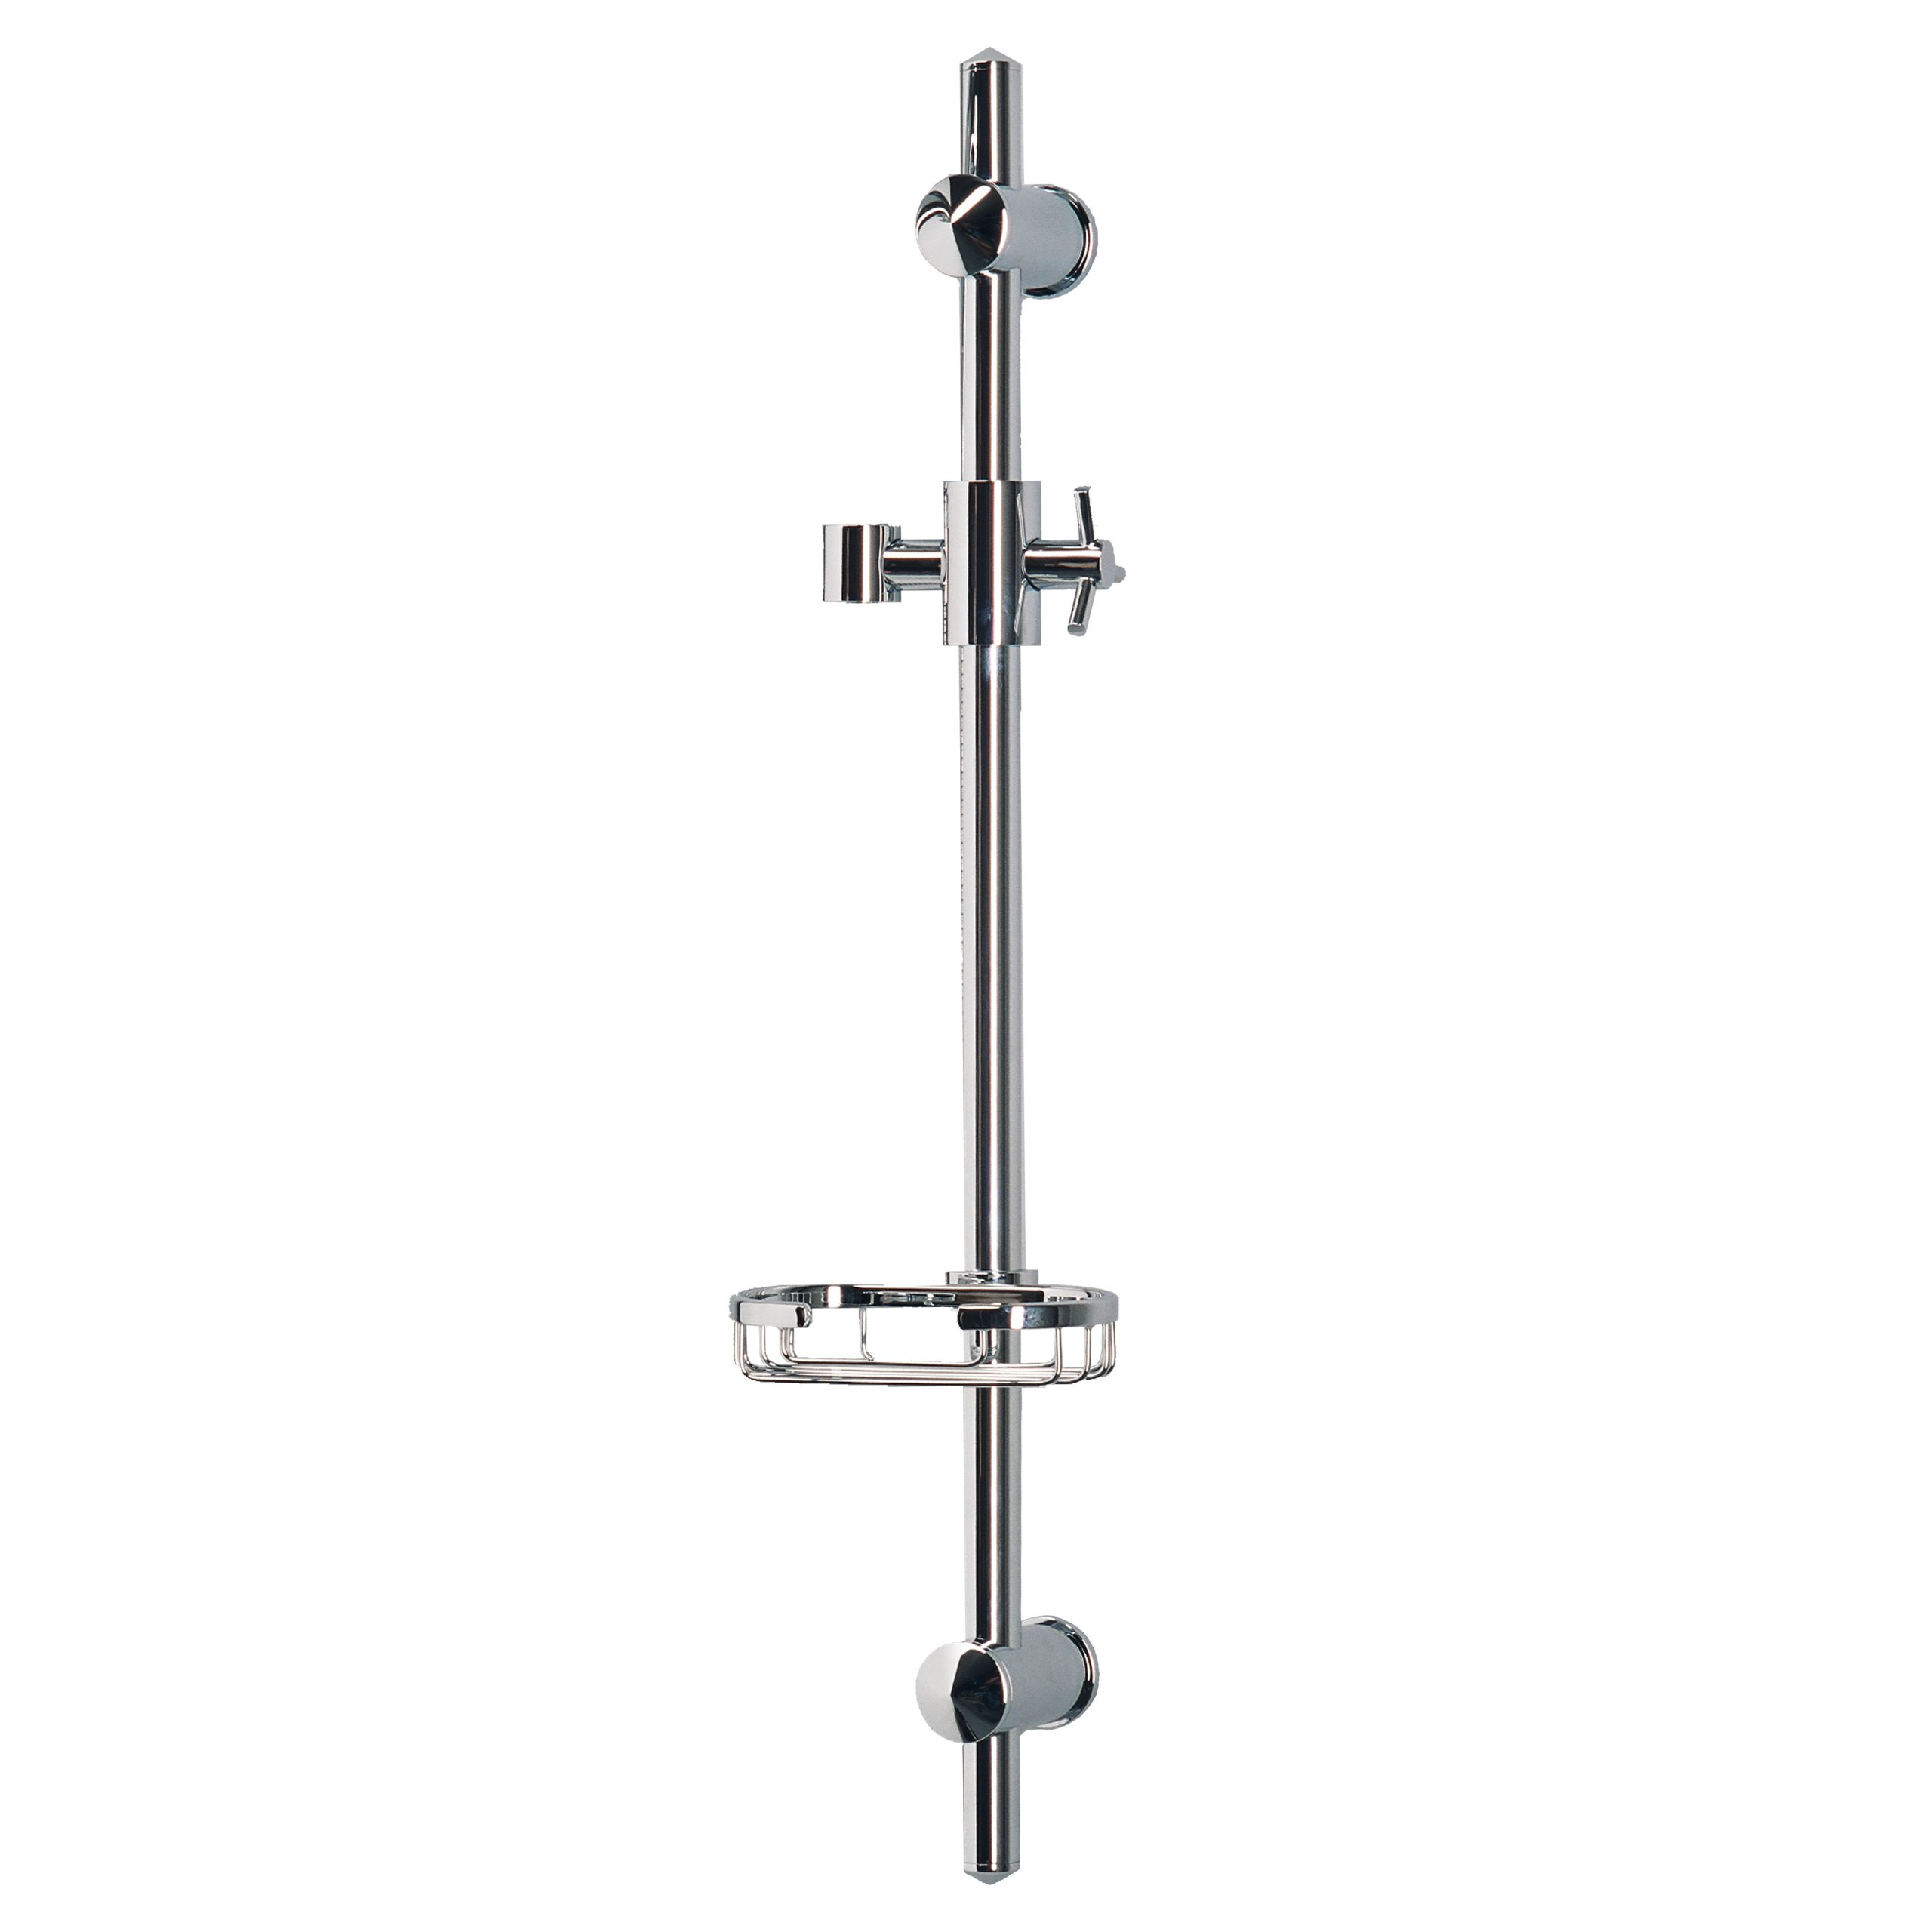 PULSE ShowerSpas 1010-CH Adjustable Slide Bar for Hand Shower with Wire Basket Soap Dish, Polished Chrome